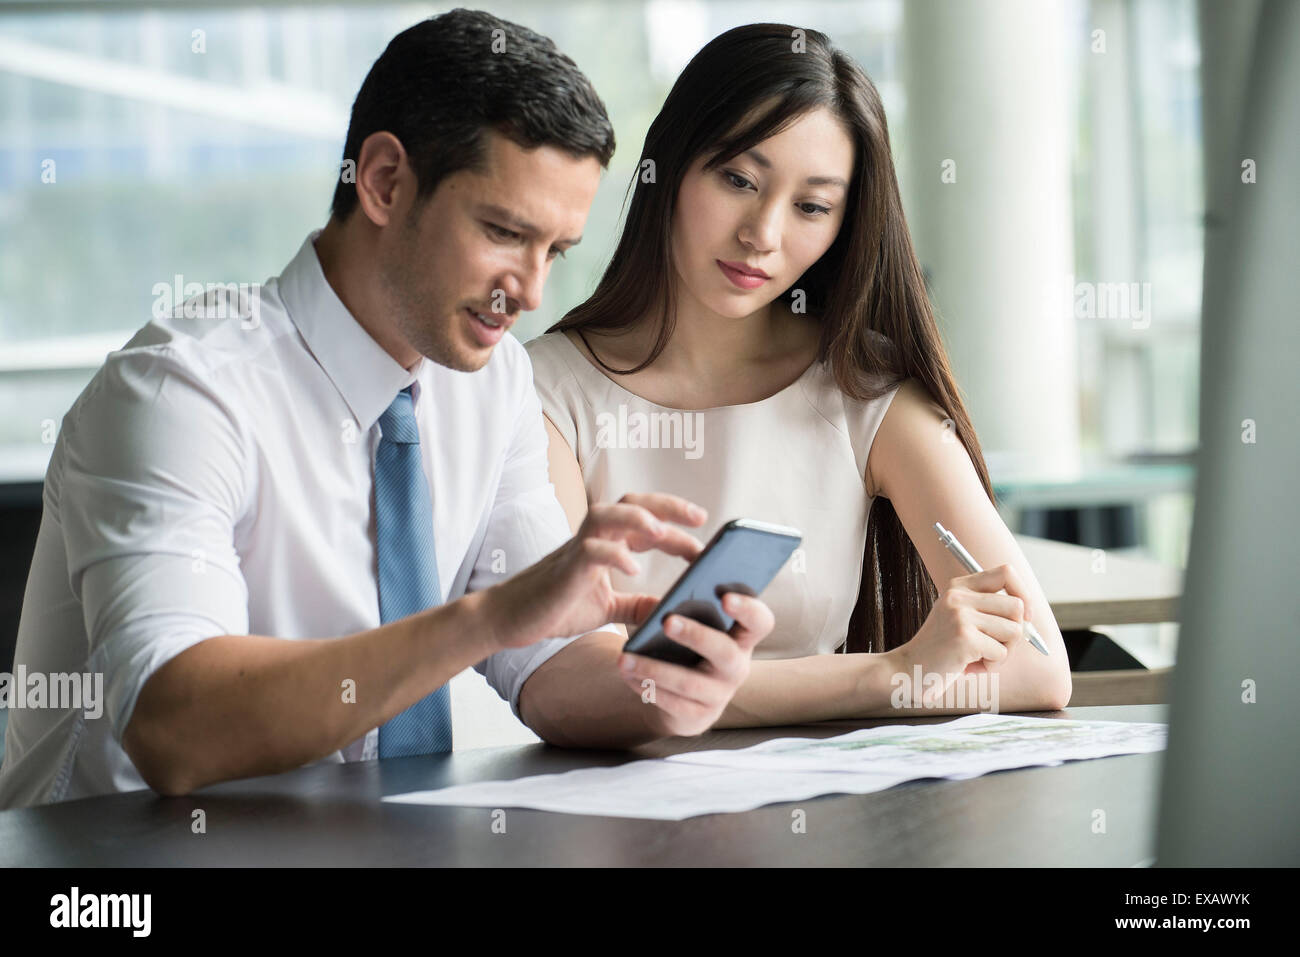 Officer worker showing colleague smartphone Stock Photo